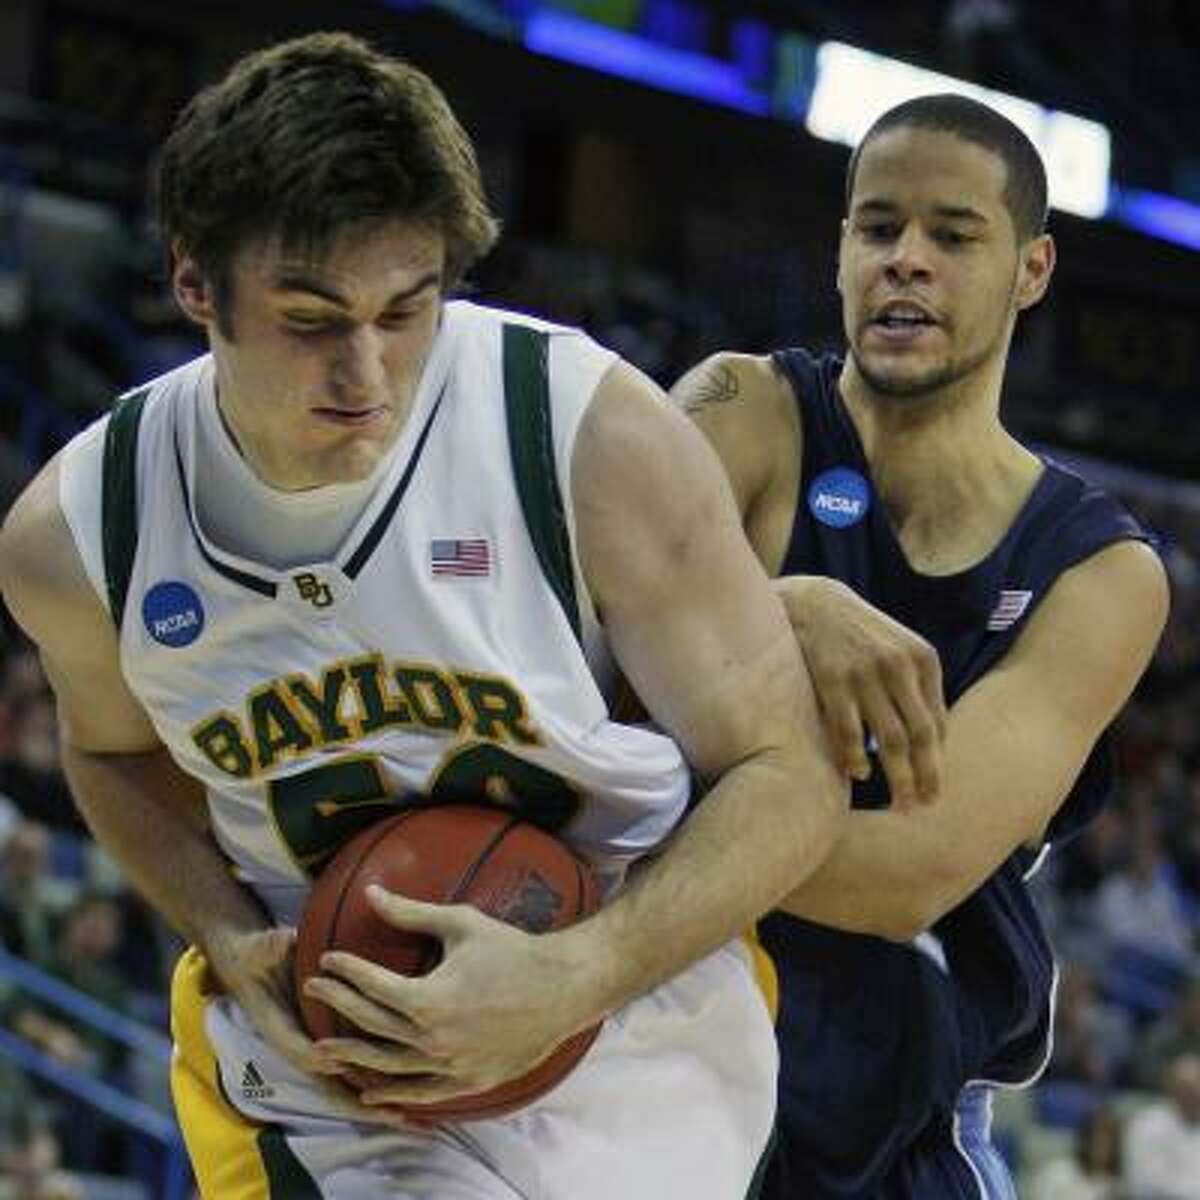 Baylor center Josh Lomers came up big in the second half, scoring 12 points and pulling down five offensive rebounds.